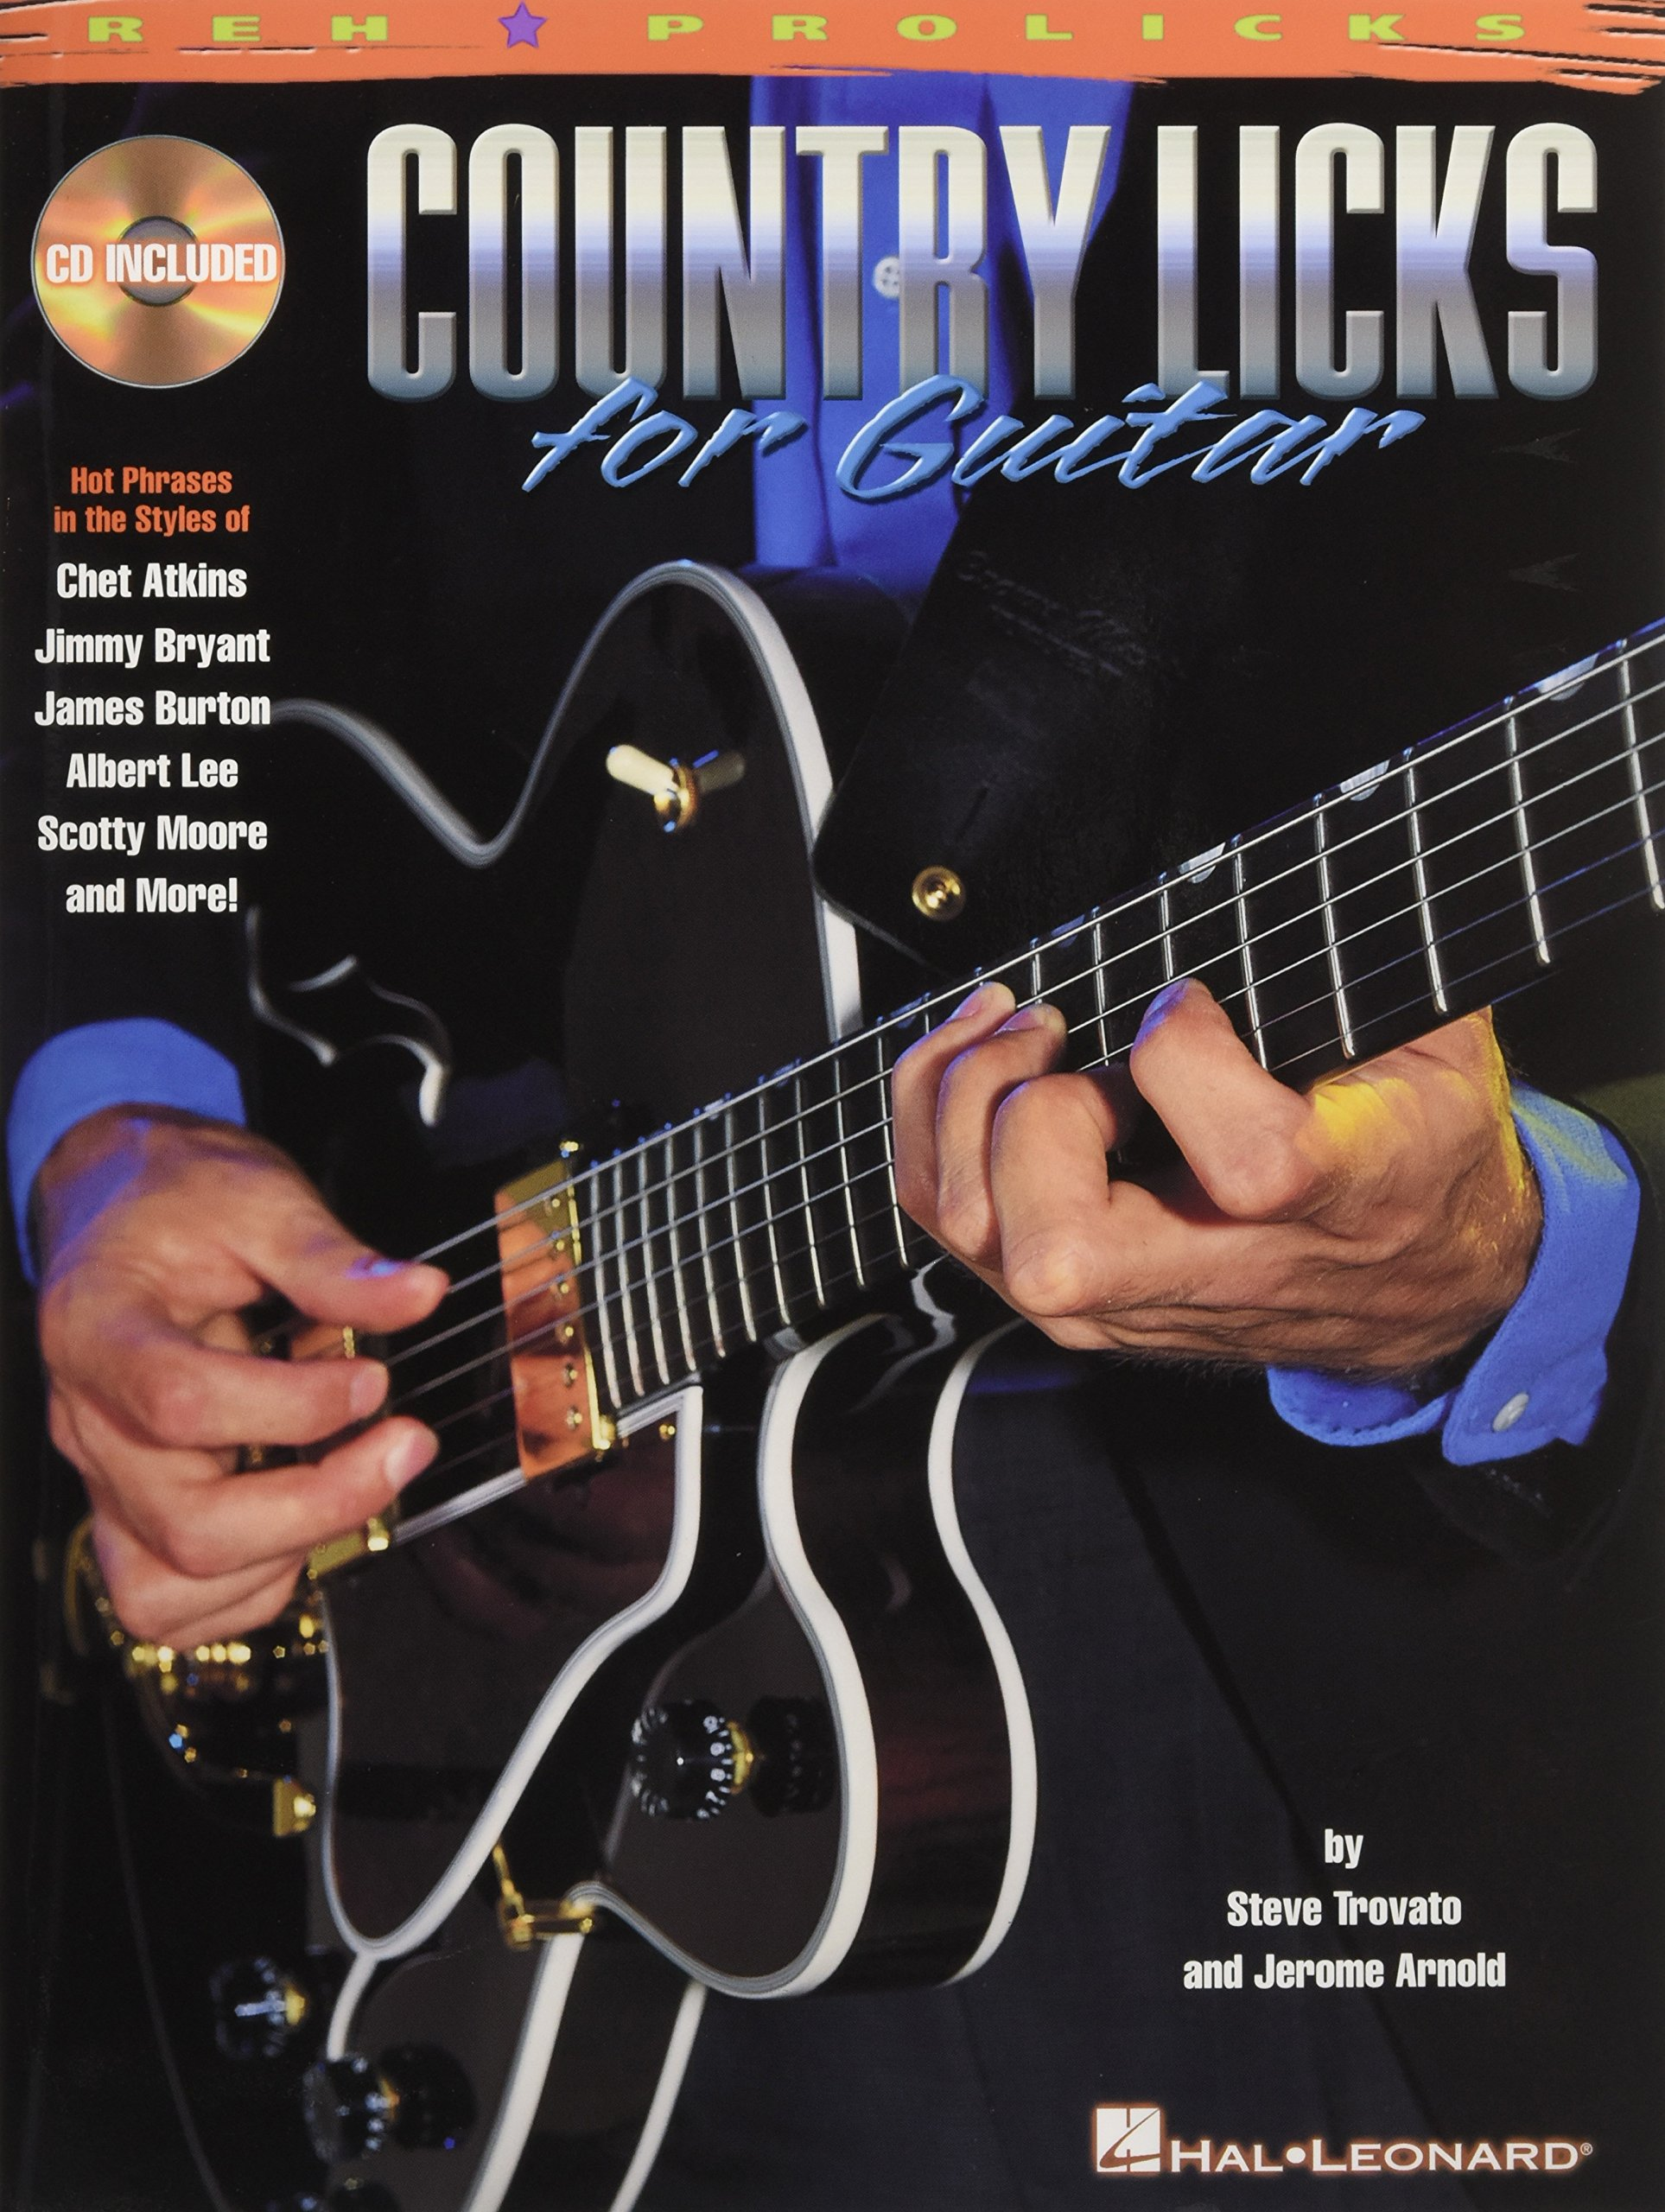 Country Licks for Guitar - This unique package examines the lead guitar licks of the masters of country guitar, such as Chet Atkins, Jimmy Bryant, James Burton, Albert Lee, Scotty Moore and many others! The accompanying online audio available using the unique code in the book includes demonstrations of each lick at normal and slow speeds. The instruction covers single-string licks, pedal-steel licks, open-string licks, chord licks, rockabilly licks and funky country licks, plus tips on fingerings, phrasing, technique, theory and application, and more. In standard notation and tab.